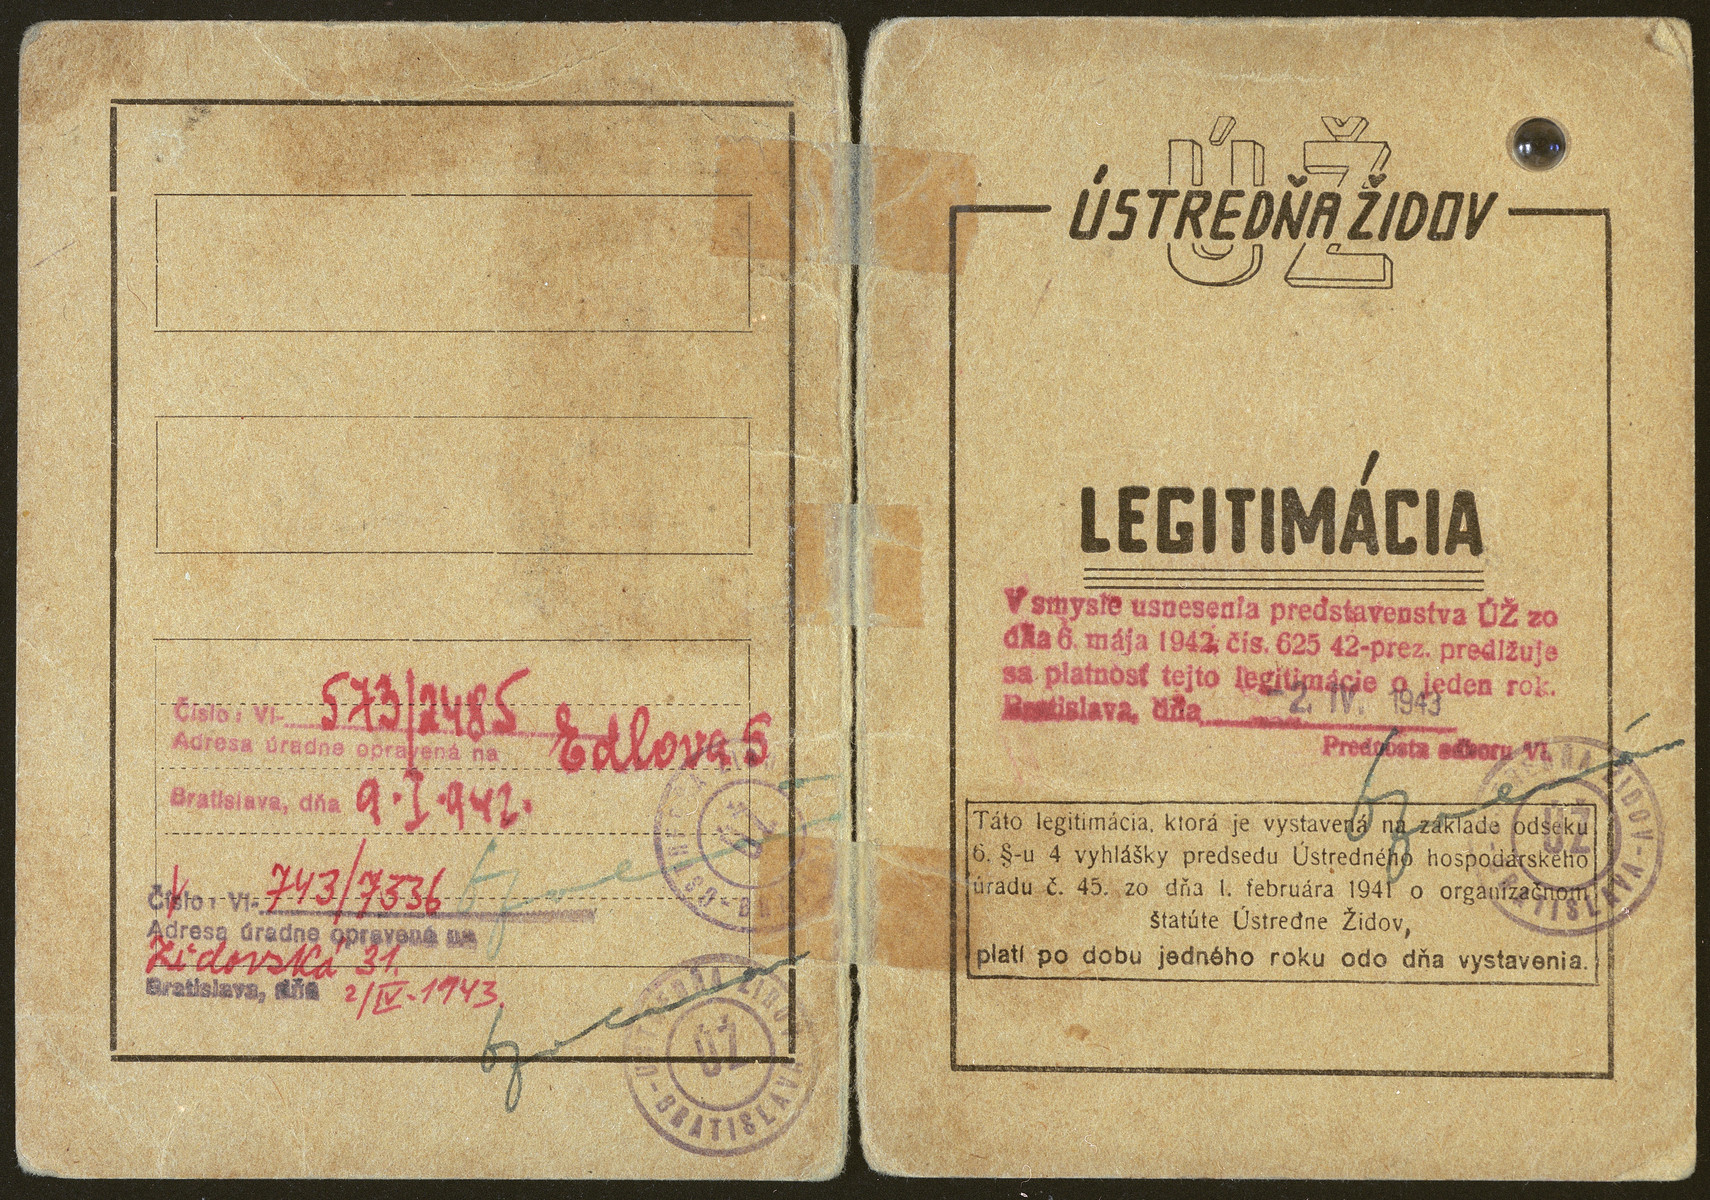 Identification card issued to Izidor Schwarz stating that he is an office worker employed in the main office of the Jewish community.